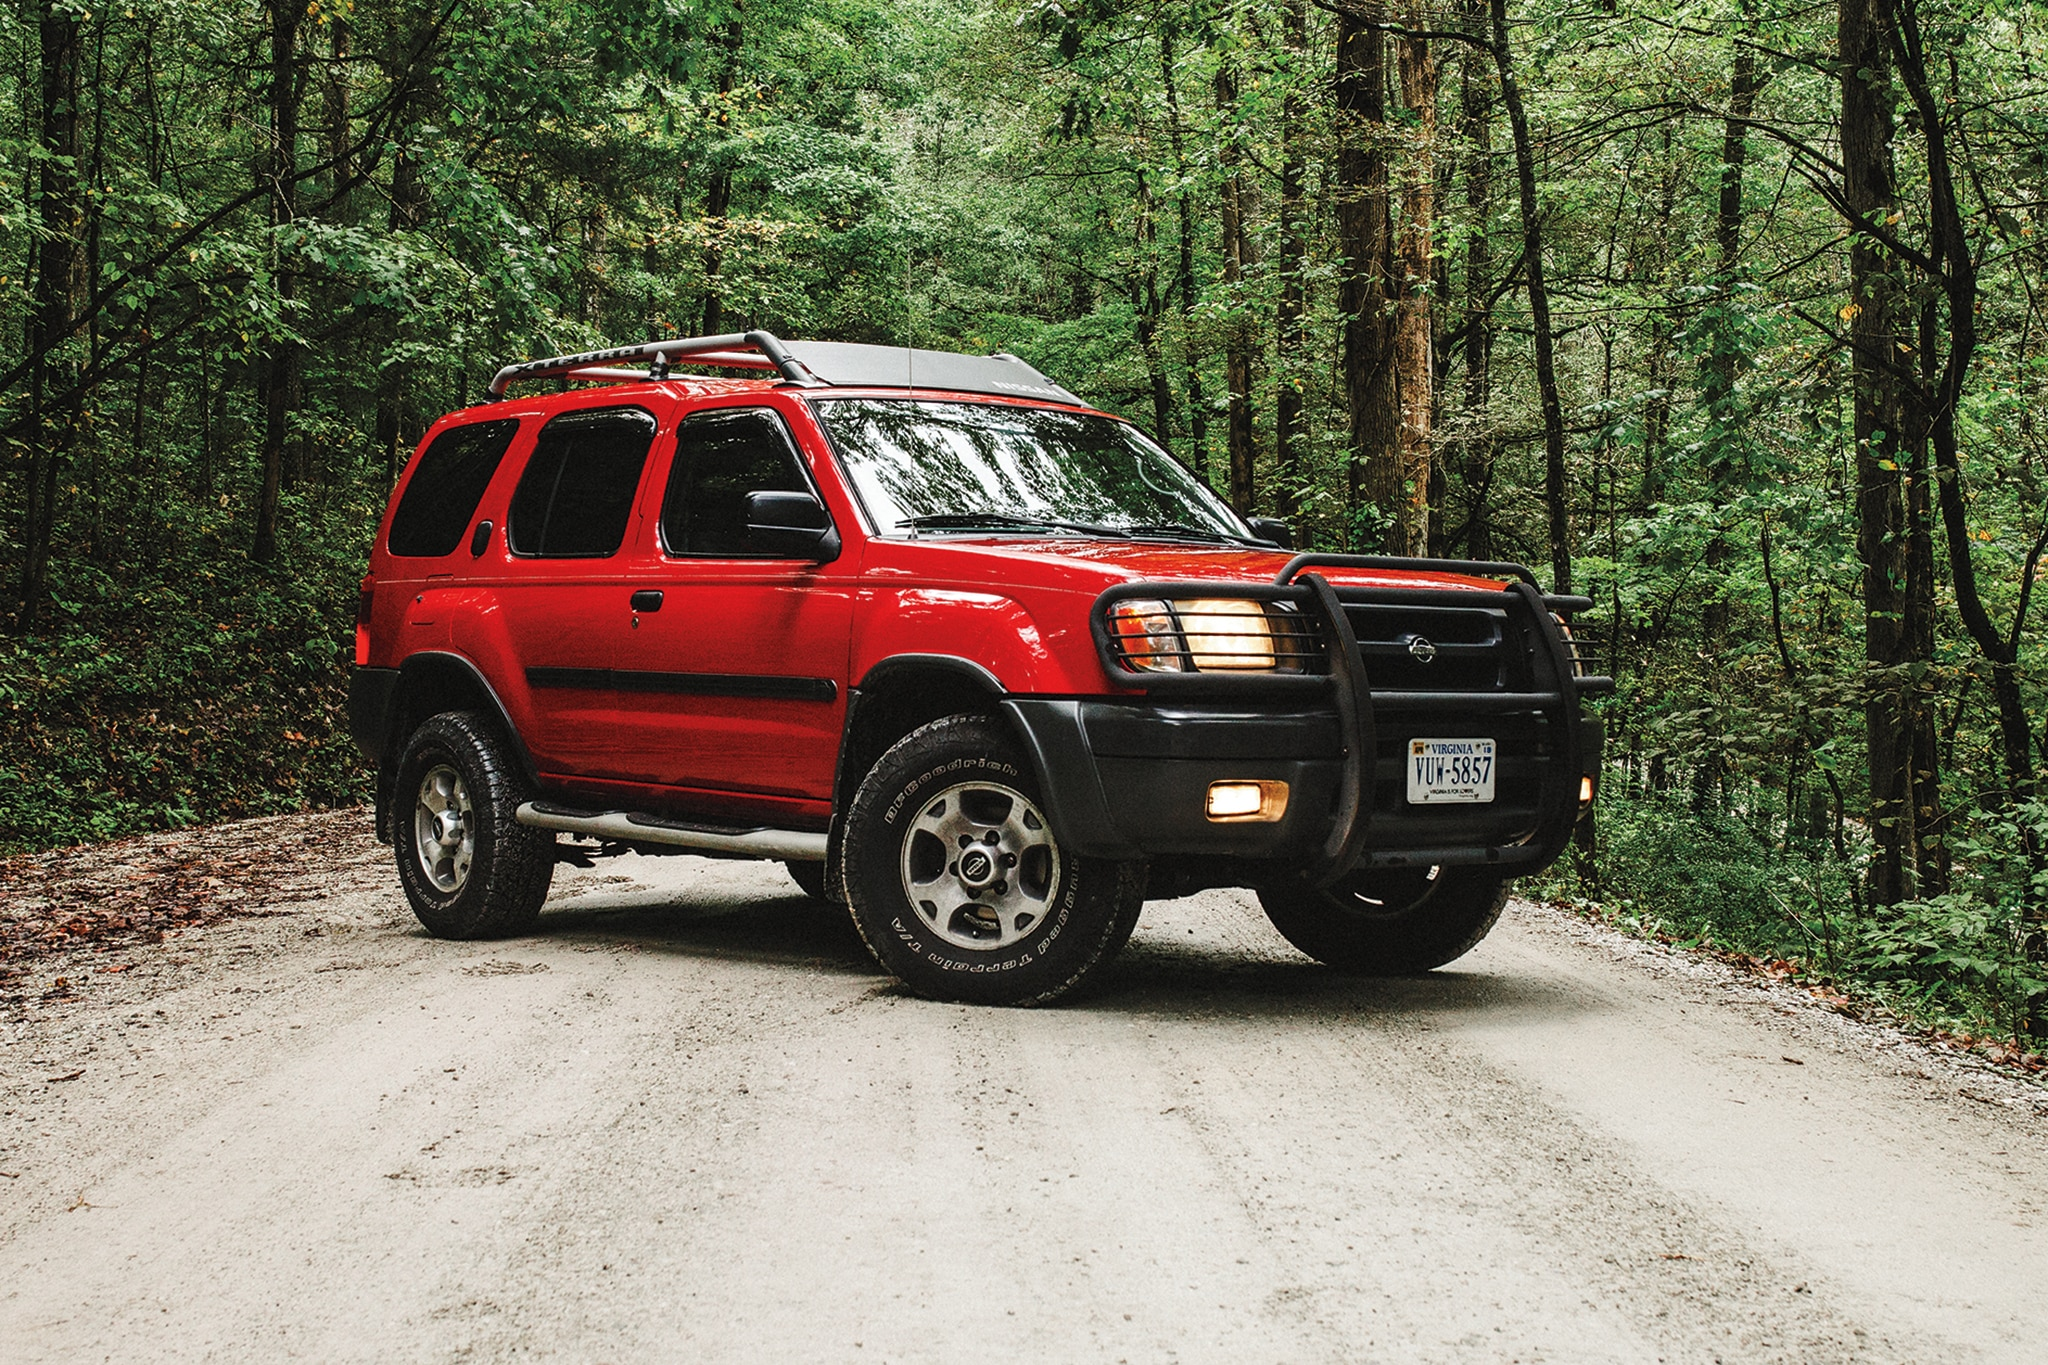 The First-Gen Nissan Xterra Is an Underappreciated Classic ...